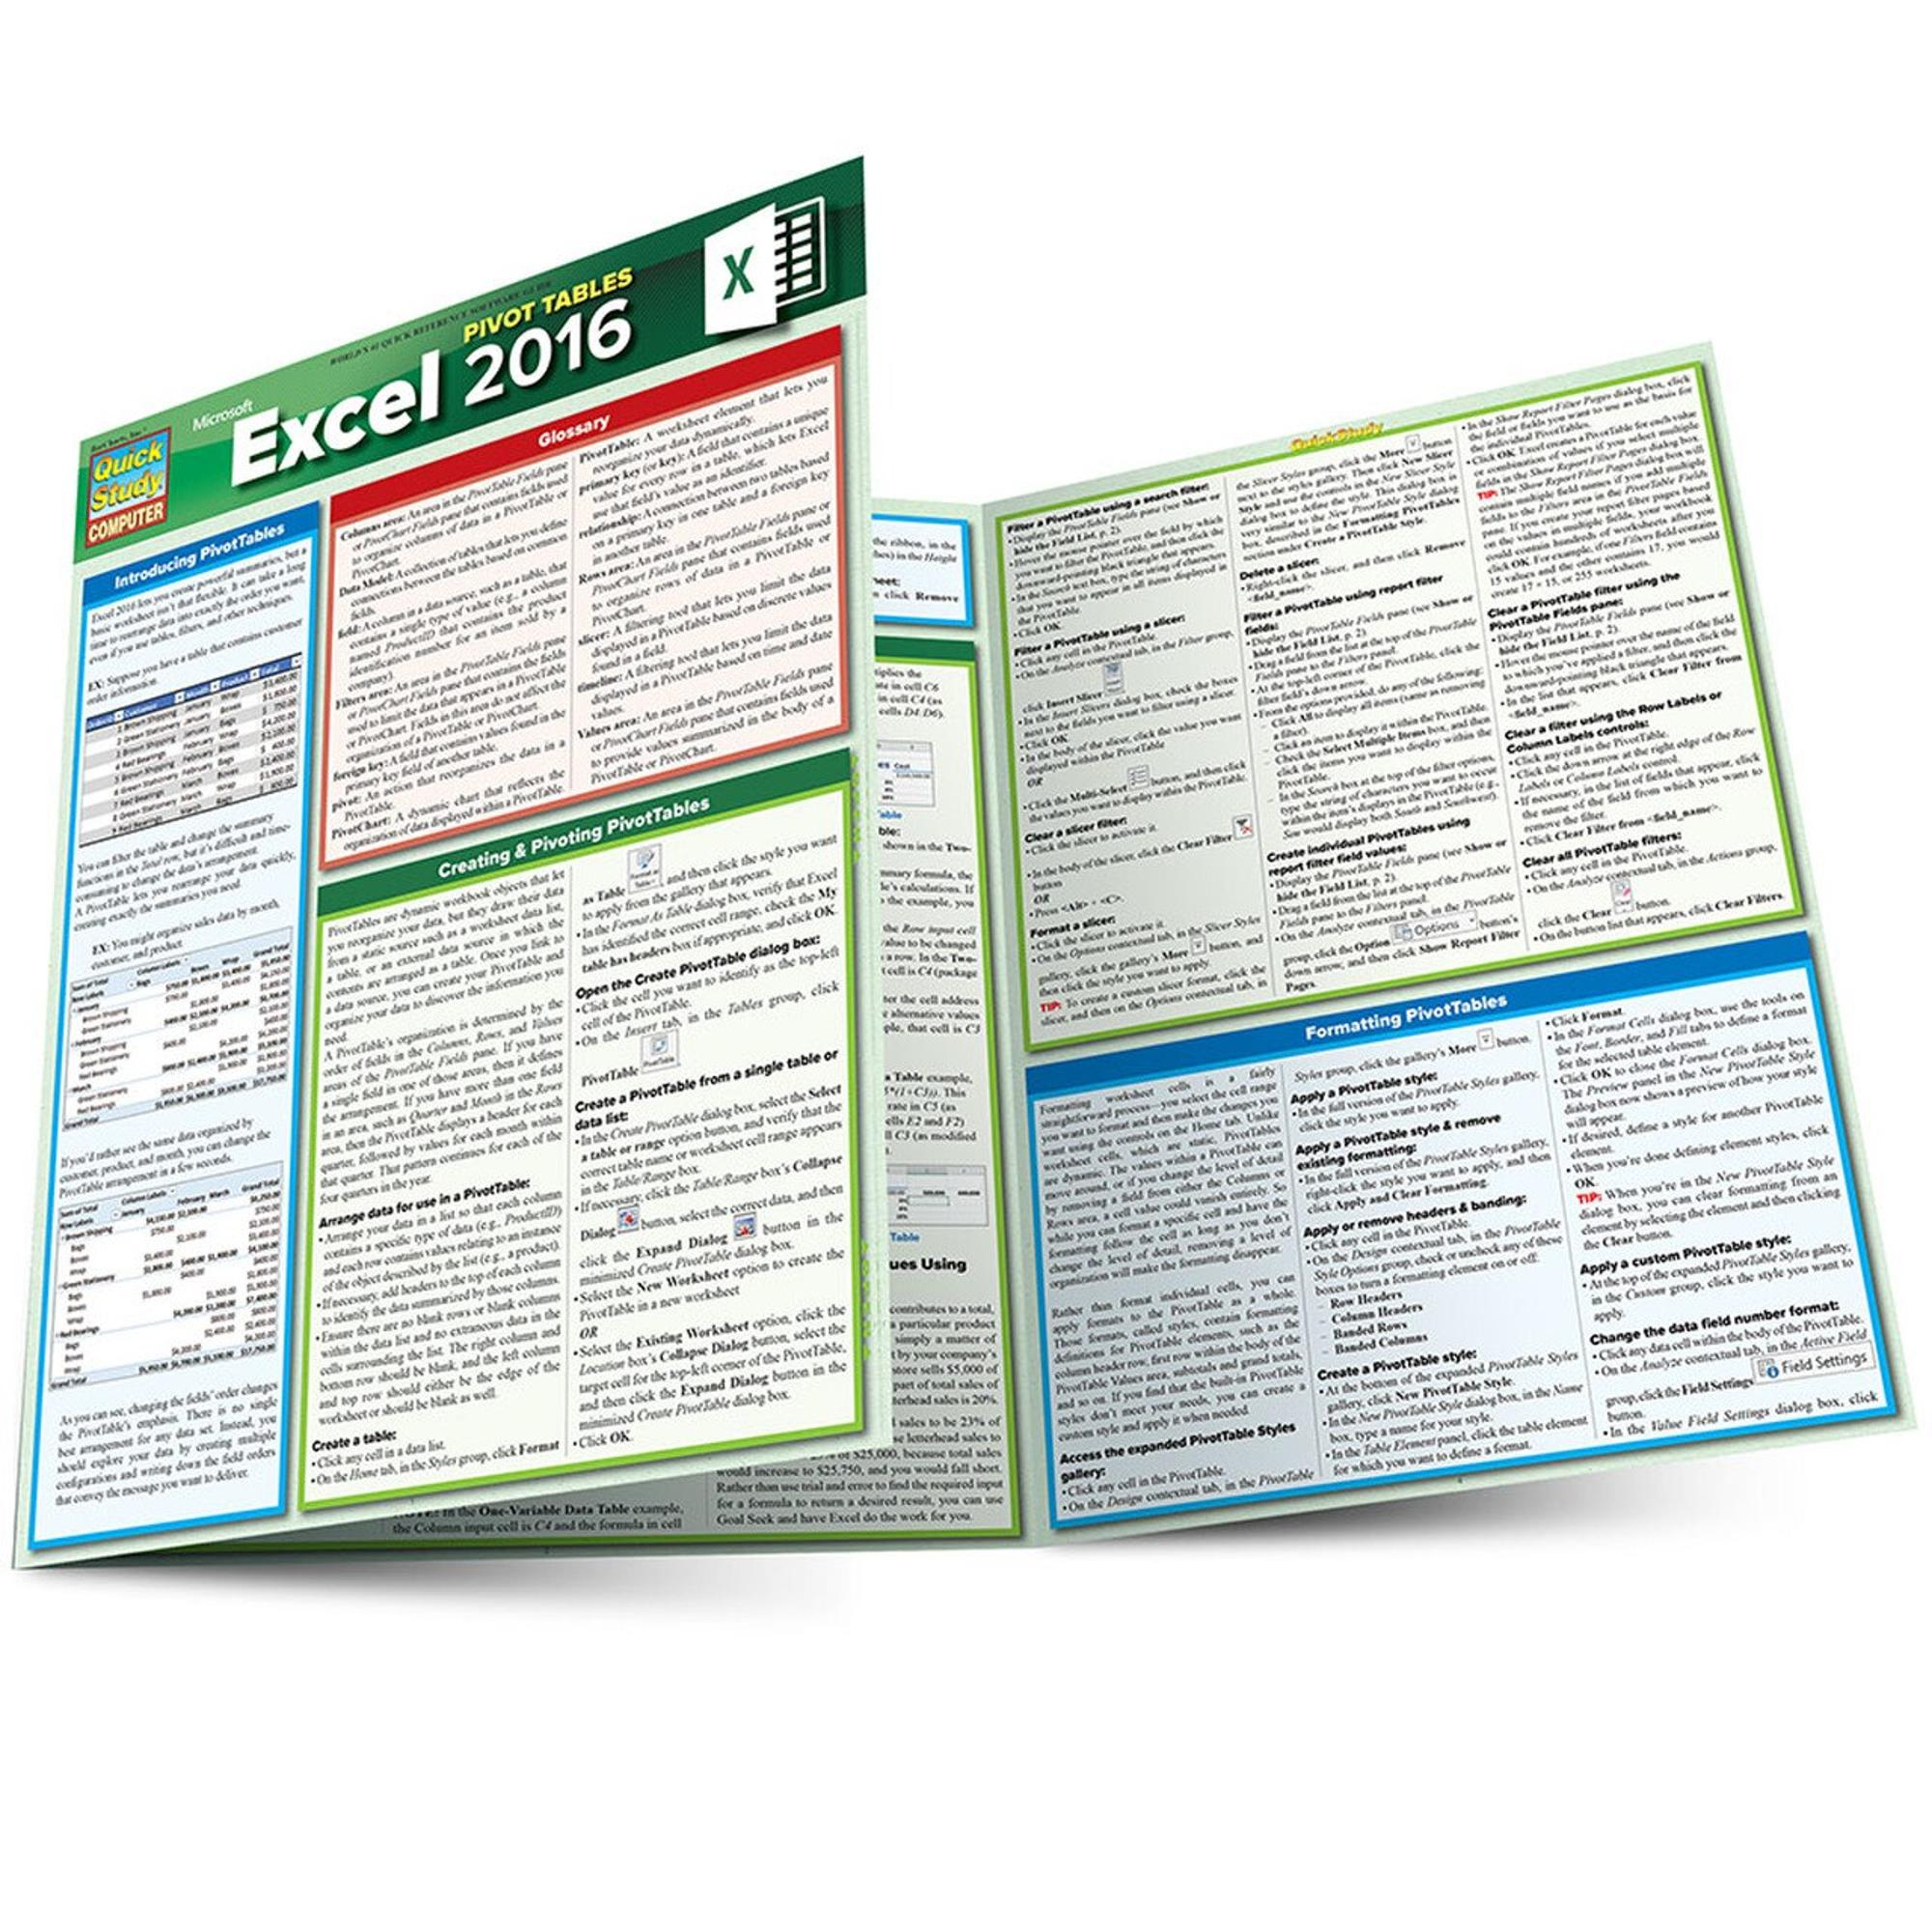 image of: EXCEL 2016 PIVOT TABLES LAMINATED REFERENCE GUIDE